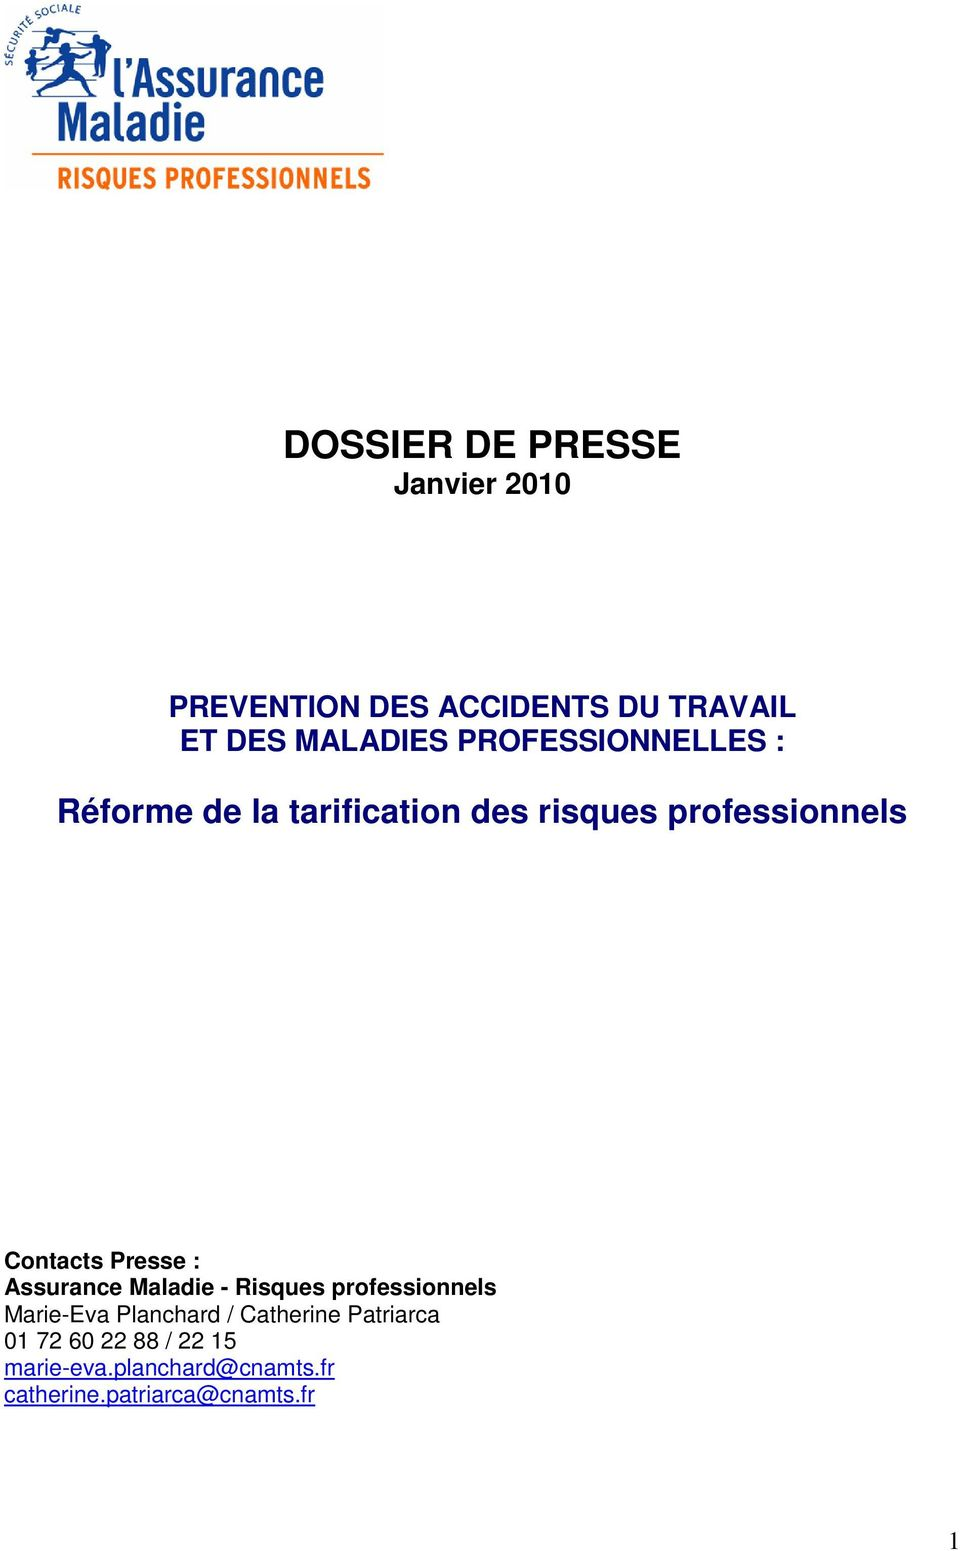 Presse : Assurance Maladie - Risques professionnels Marie-Eva Planchard / Catherine